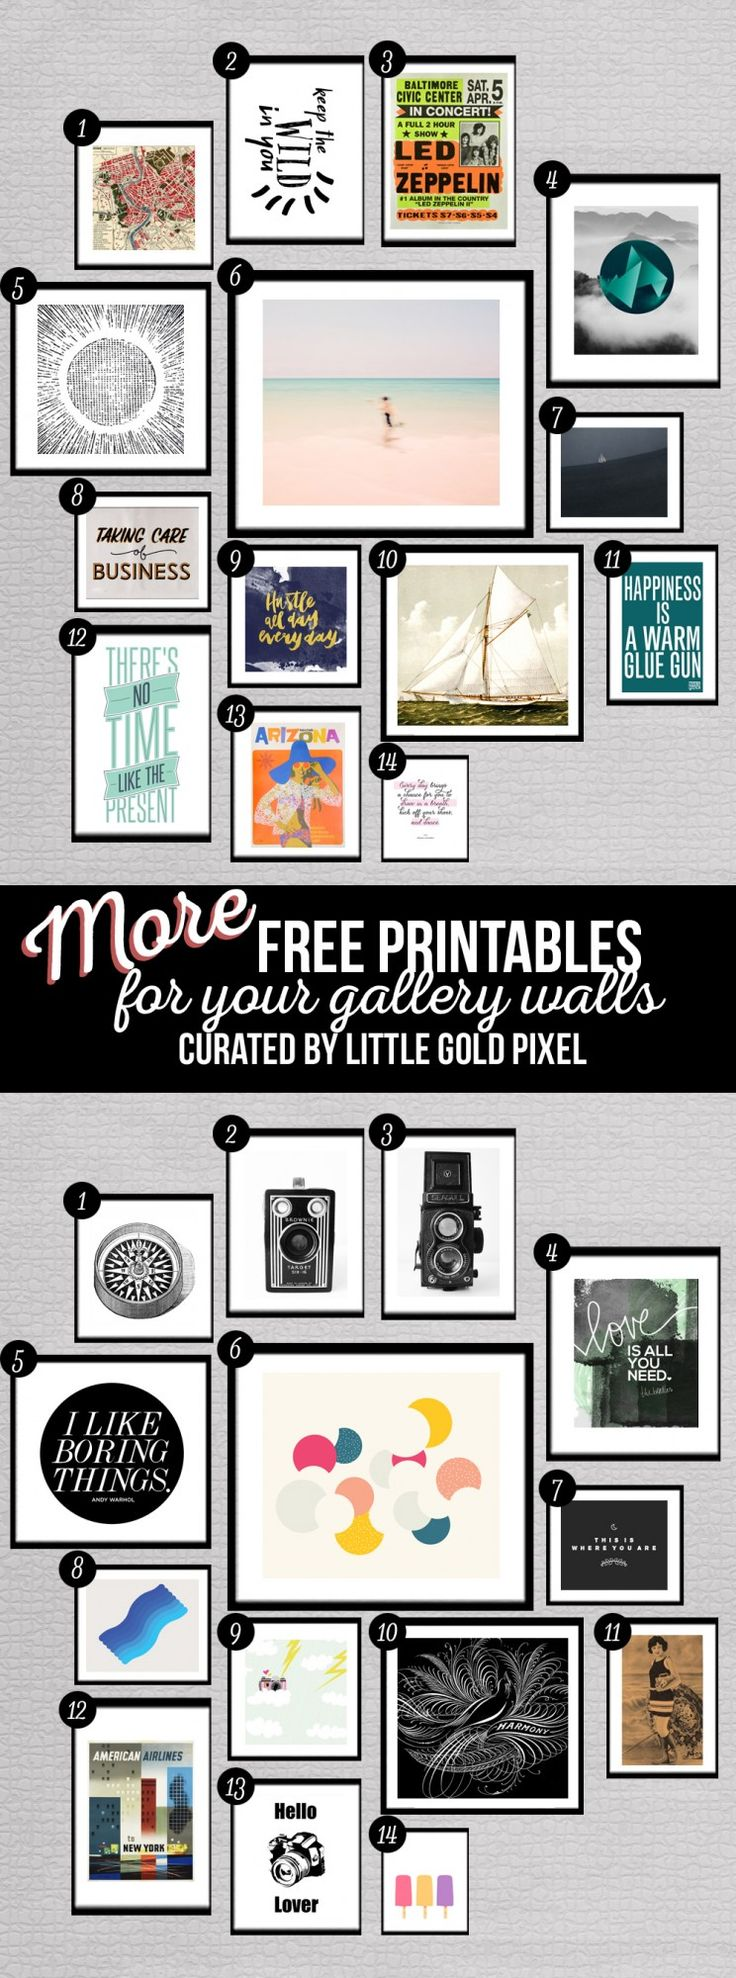 28 More Free Printables for Gallery Walls • Little Gold Pixel